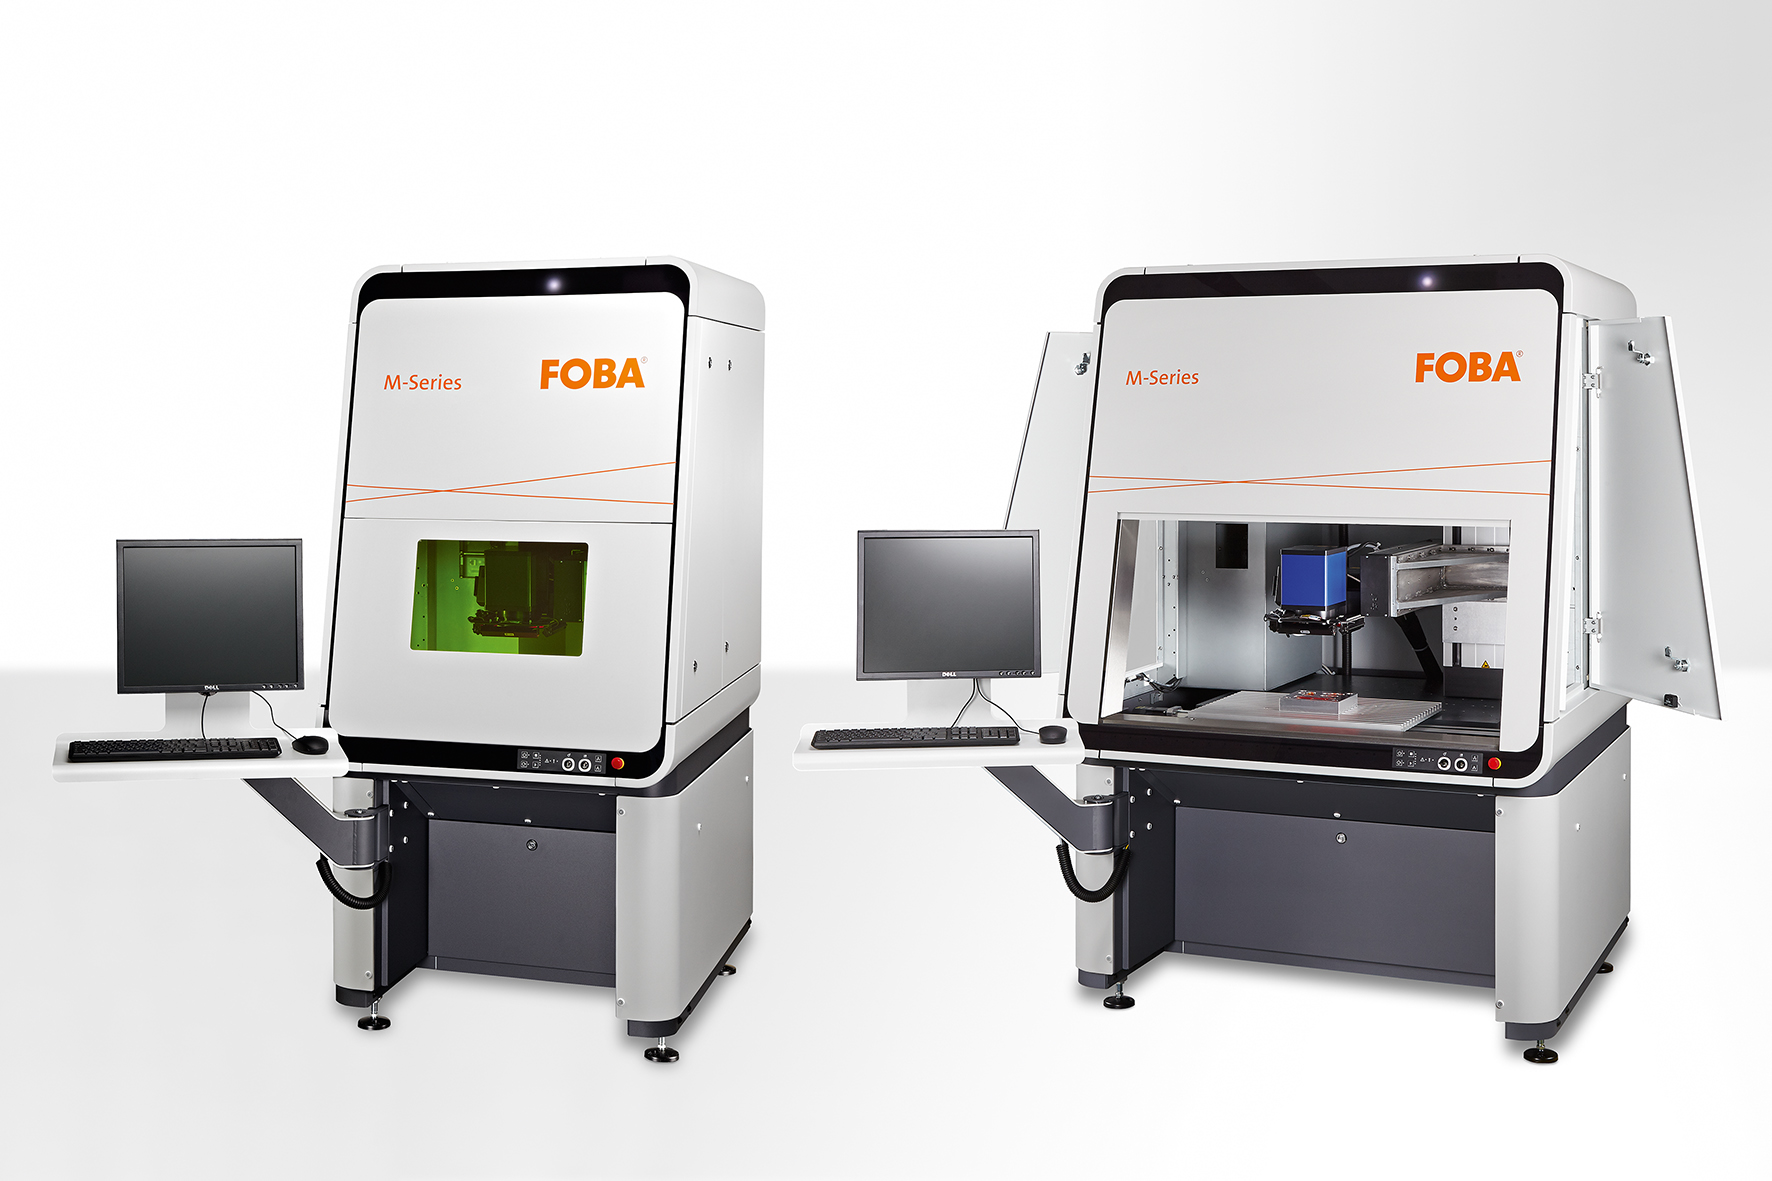 New generation of powerful, precise laser marking workstations